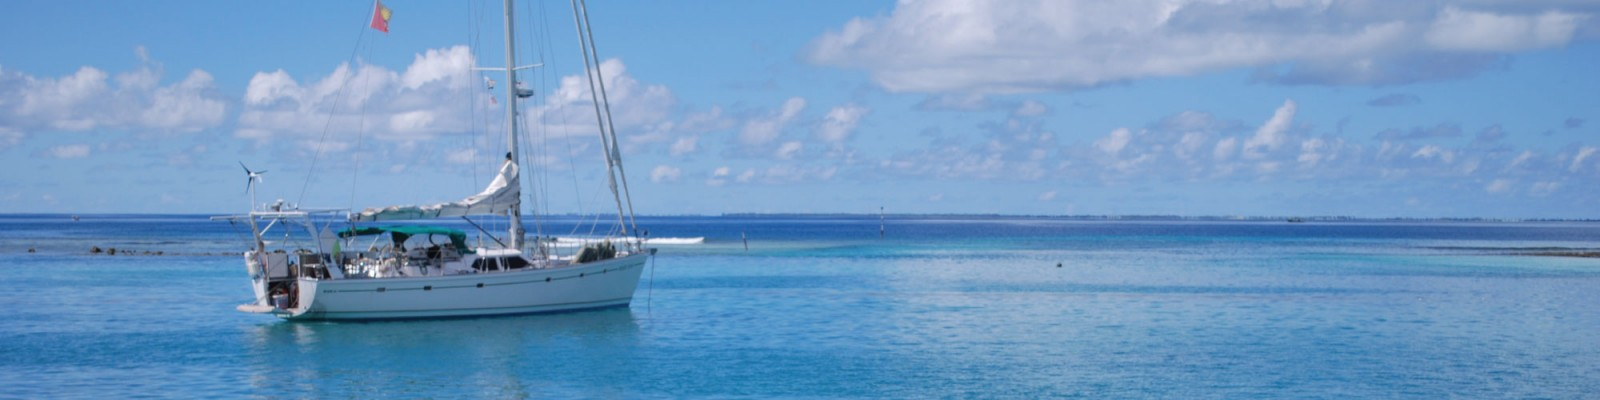 Tenrag Yacht Charter: The Maldives